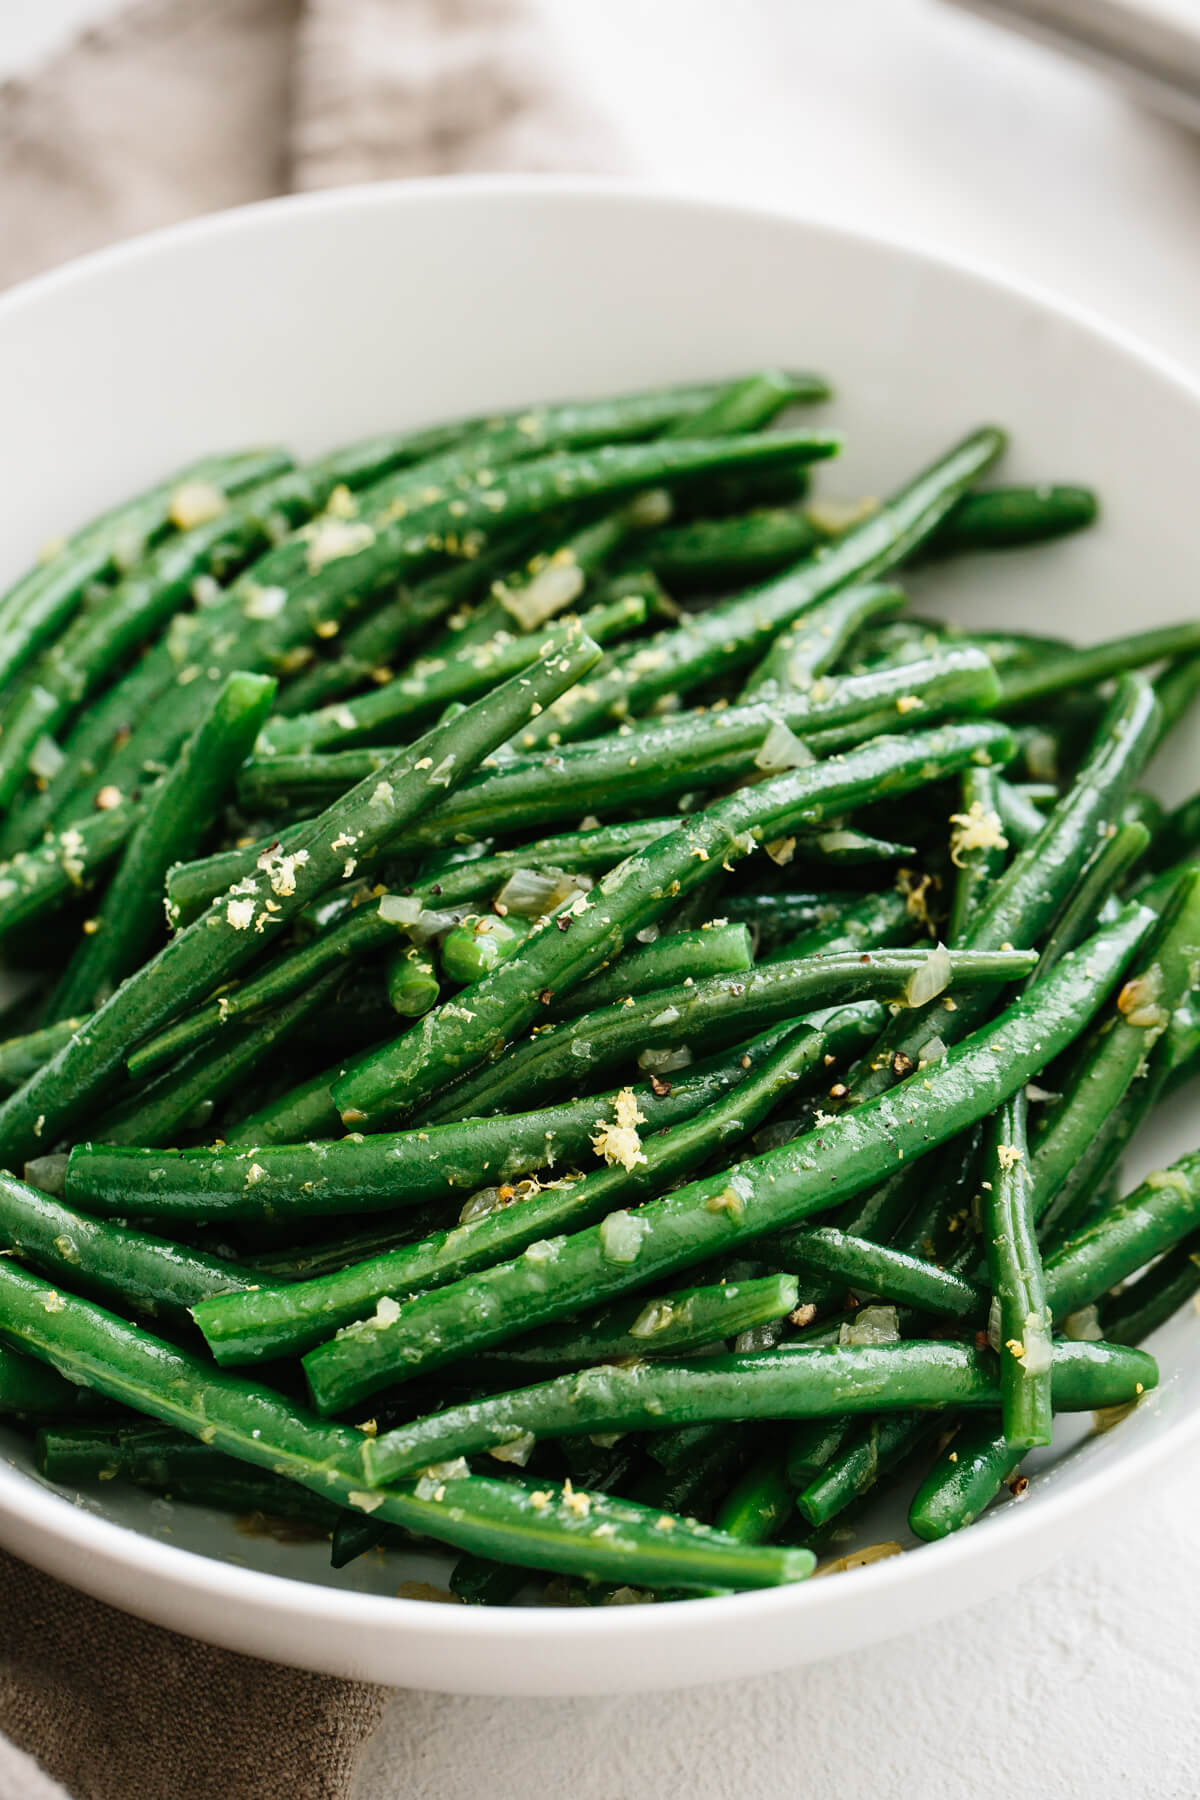 Green beans garnished with shallots and lemon in a white bowl.